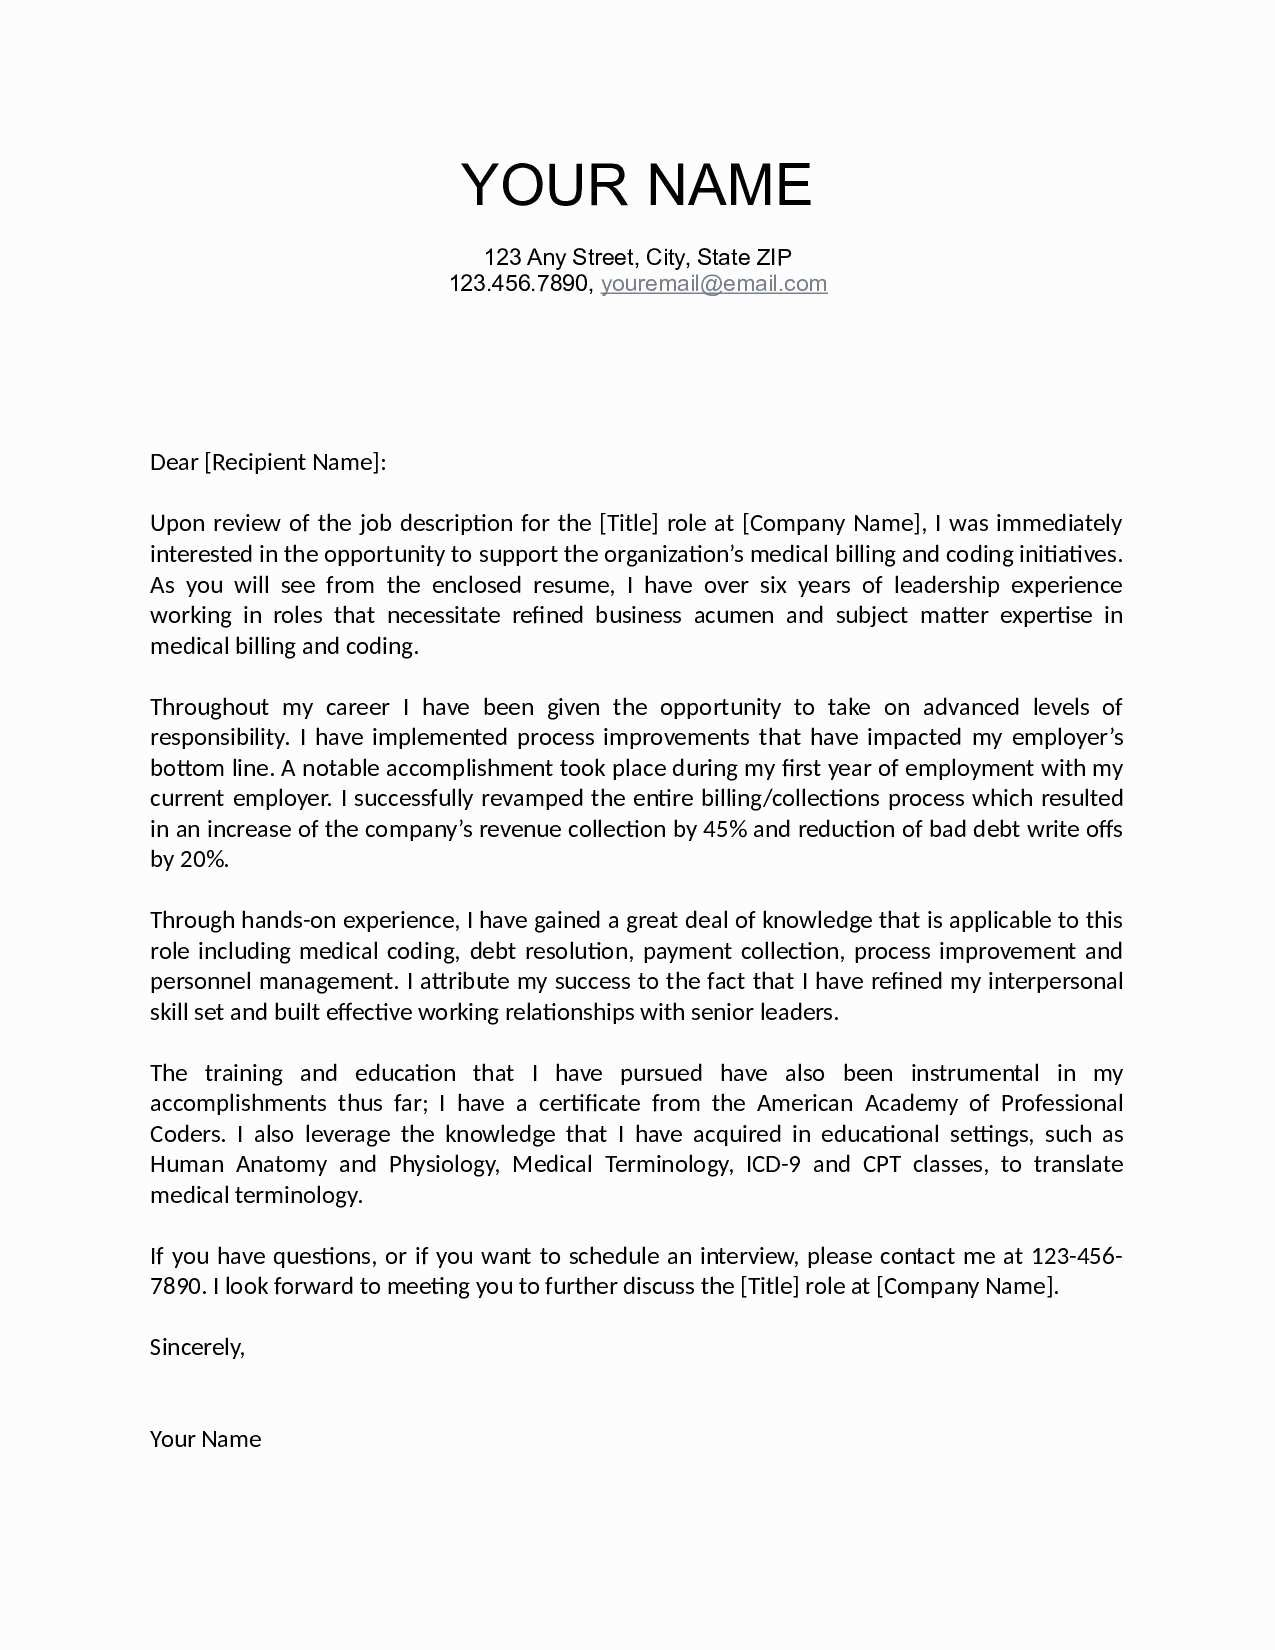 Cute Cover Letter Template - Sample Cover Letter for Marketing Job